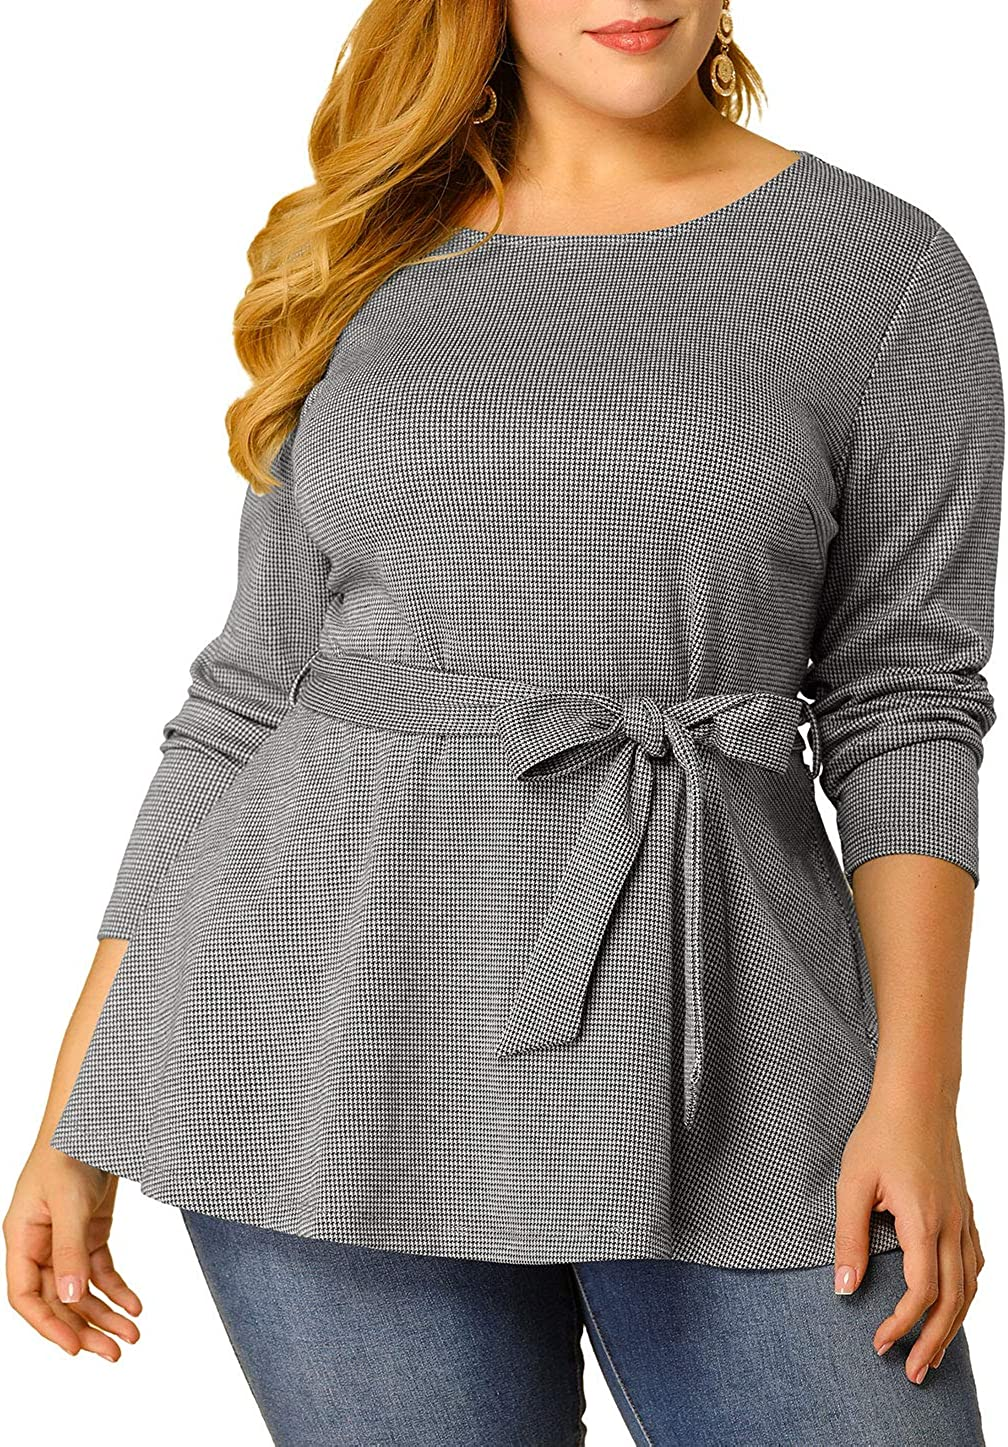 Agnes Orinda Women's Plus Size Blouse Houndstooth Office Casual Work Blouses Peplum Top